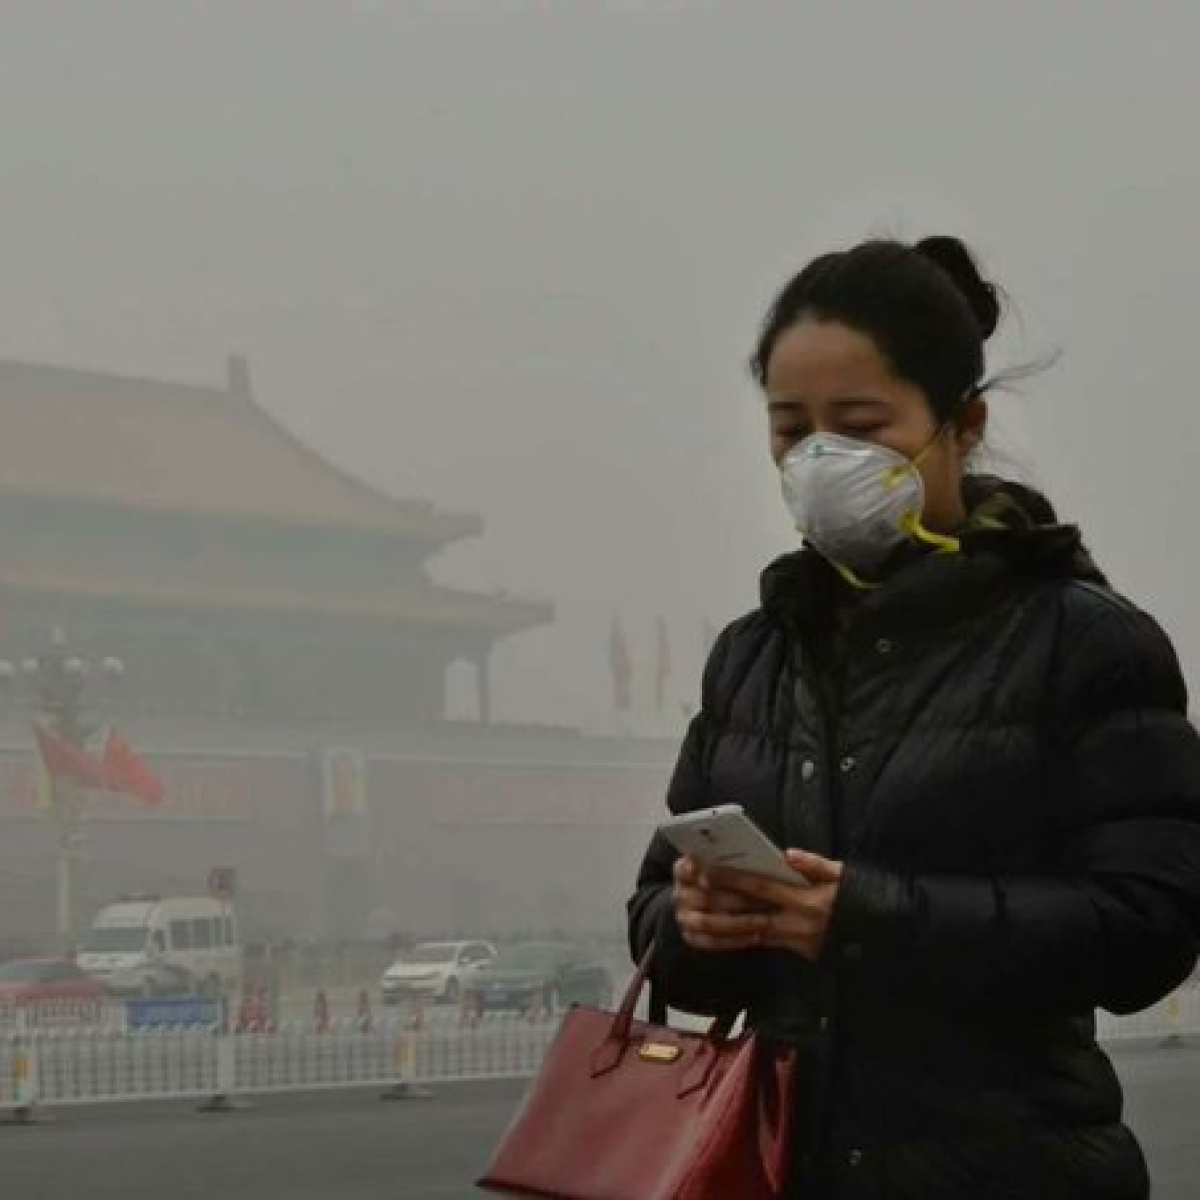 Air pollution linked to heart issues in humans, animals